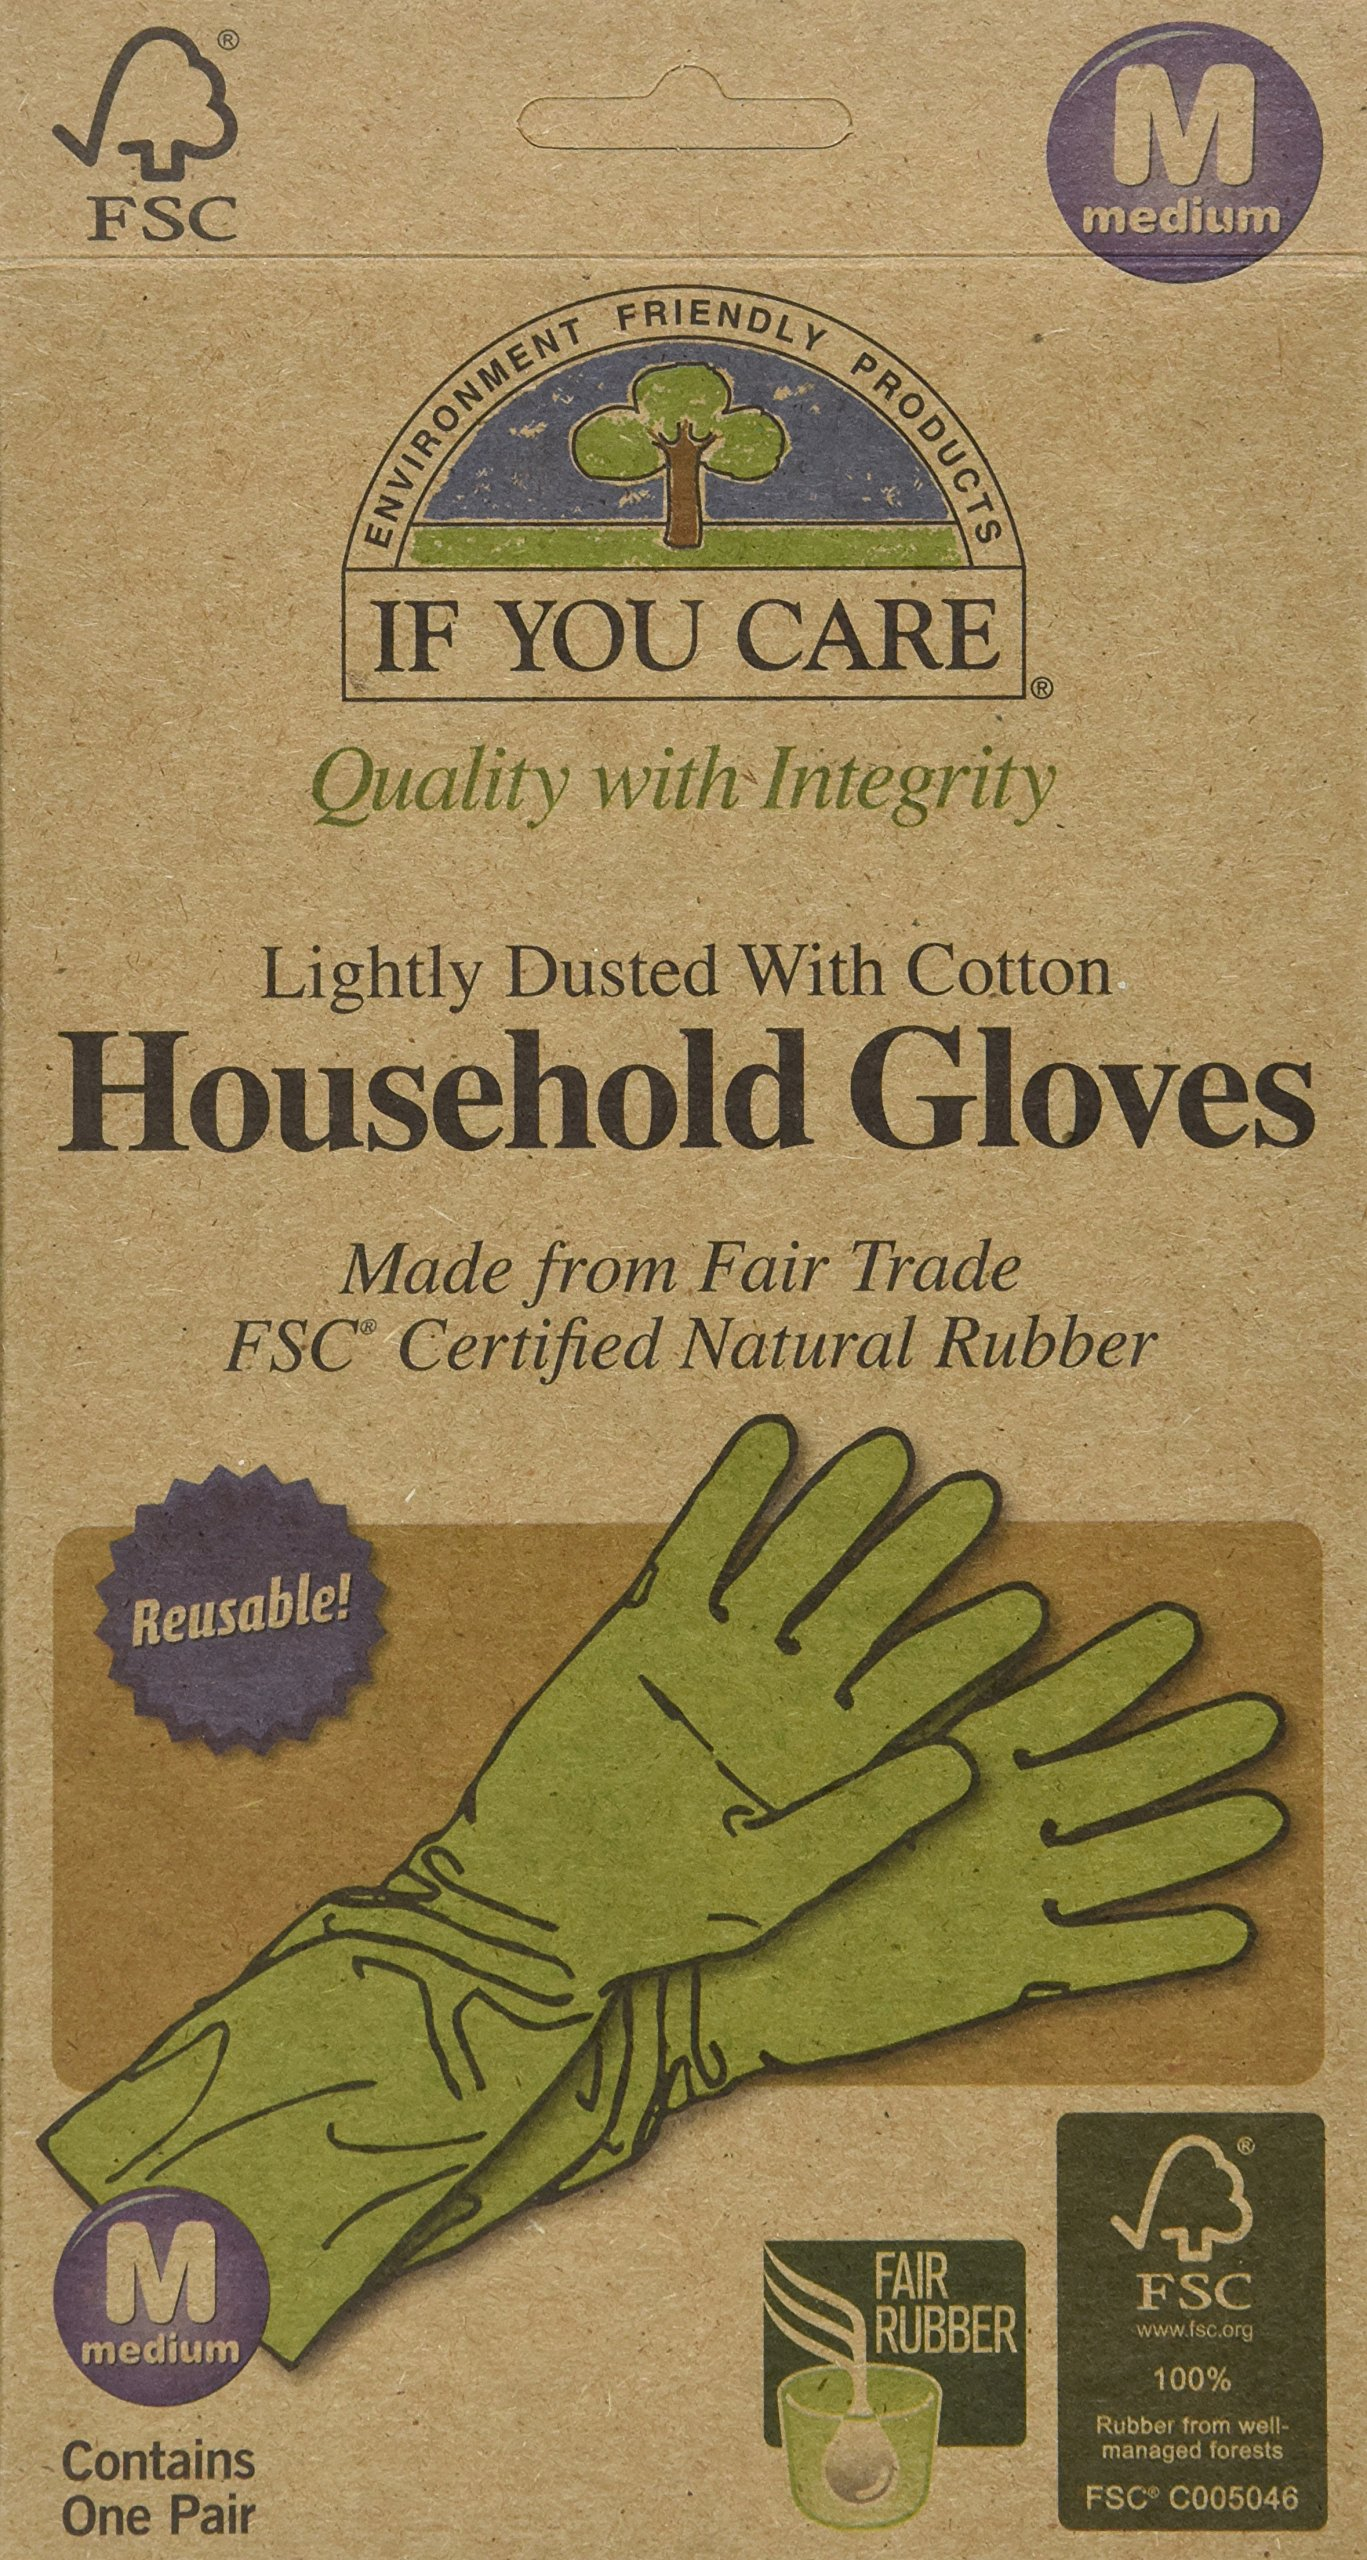 IF YOU CARE Medium Cotton Flock Lined Household Gloves, 1 Pair (Pack of 6)